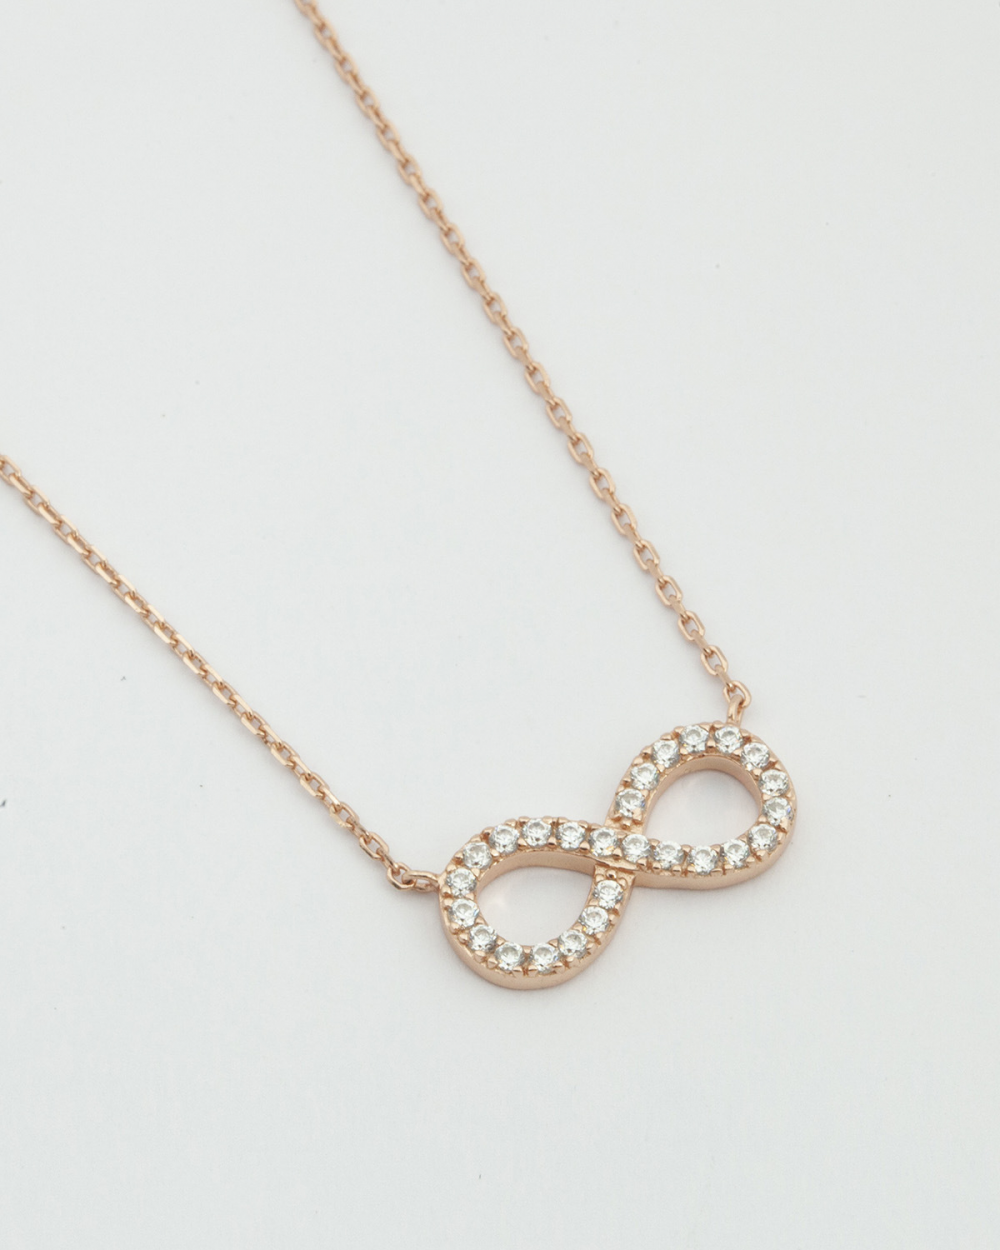 Archive Sale CUBIC ZIRCONIA INFINITY NECKLACE / ROSE GOLD FINISH NOVE25